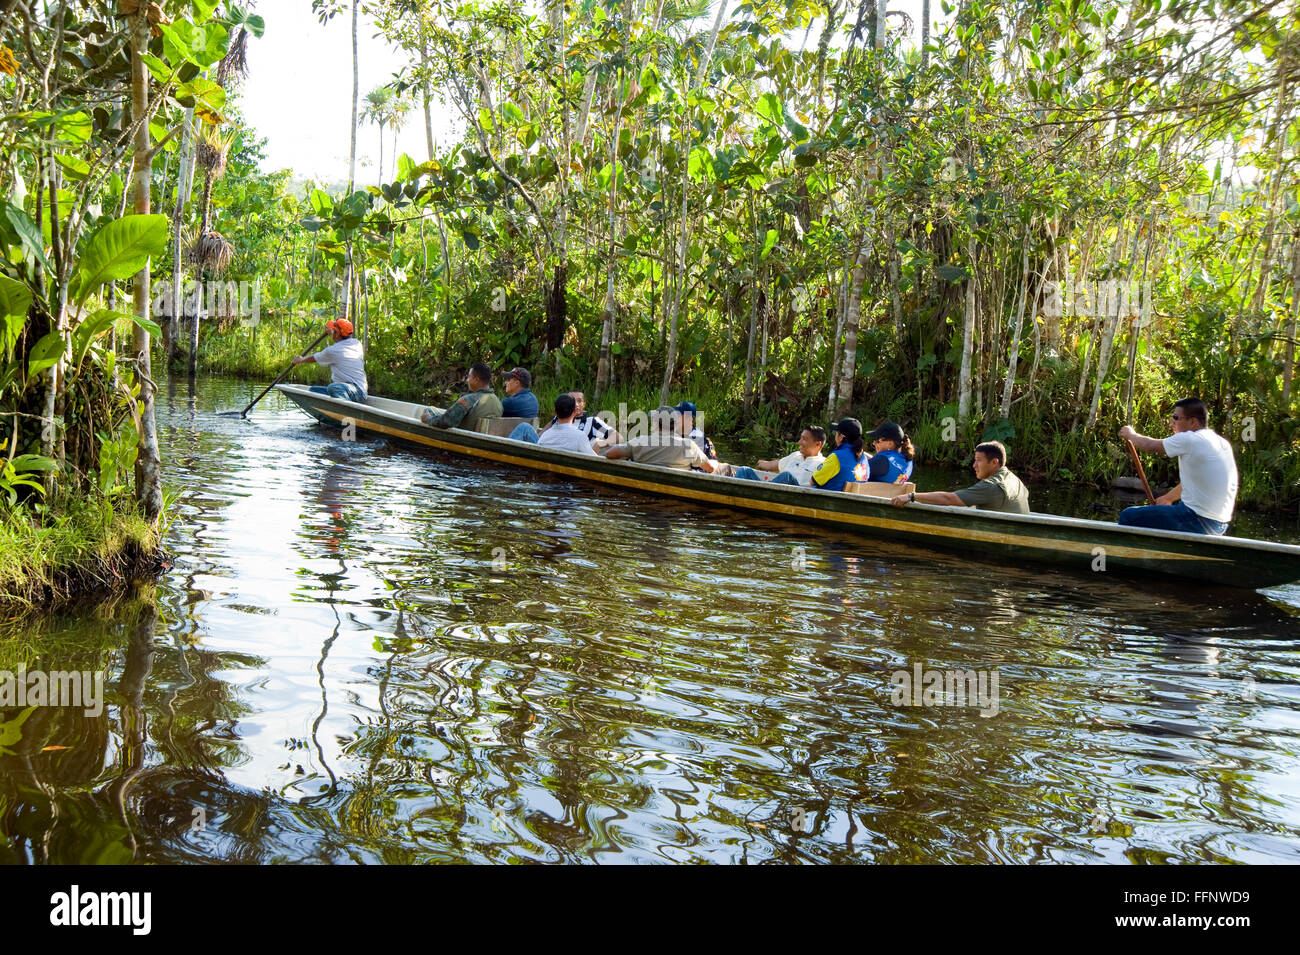 Boat with visitors touring the Amazon River in Ecuador - Stock Image